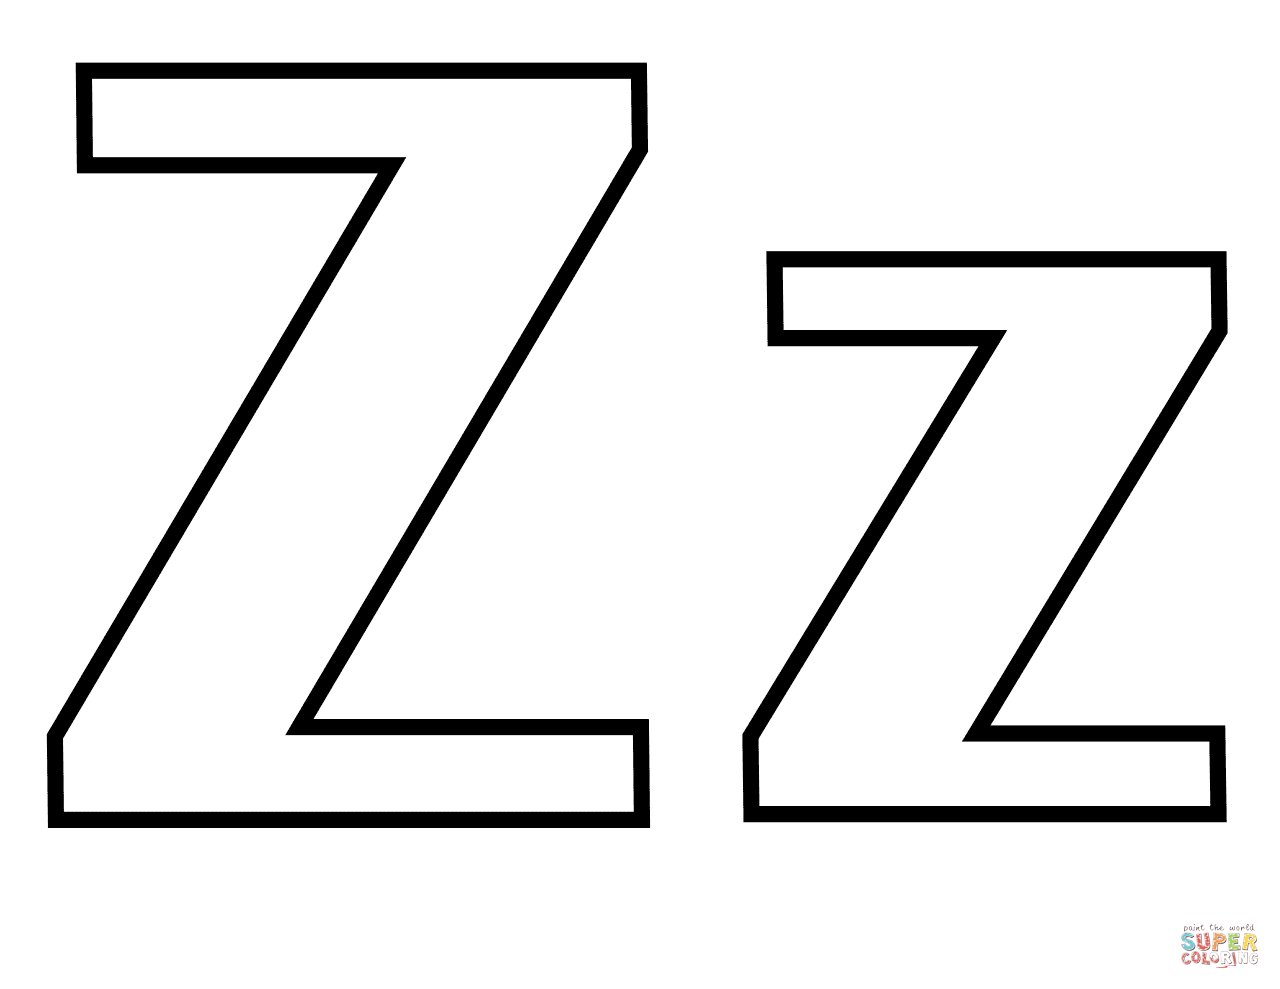 Classic Letter Z Coloring Page Free Printable Coloring Pages Coloring Pages Alphabet Letter Templates Printable Letters